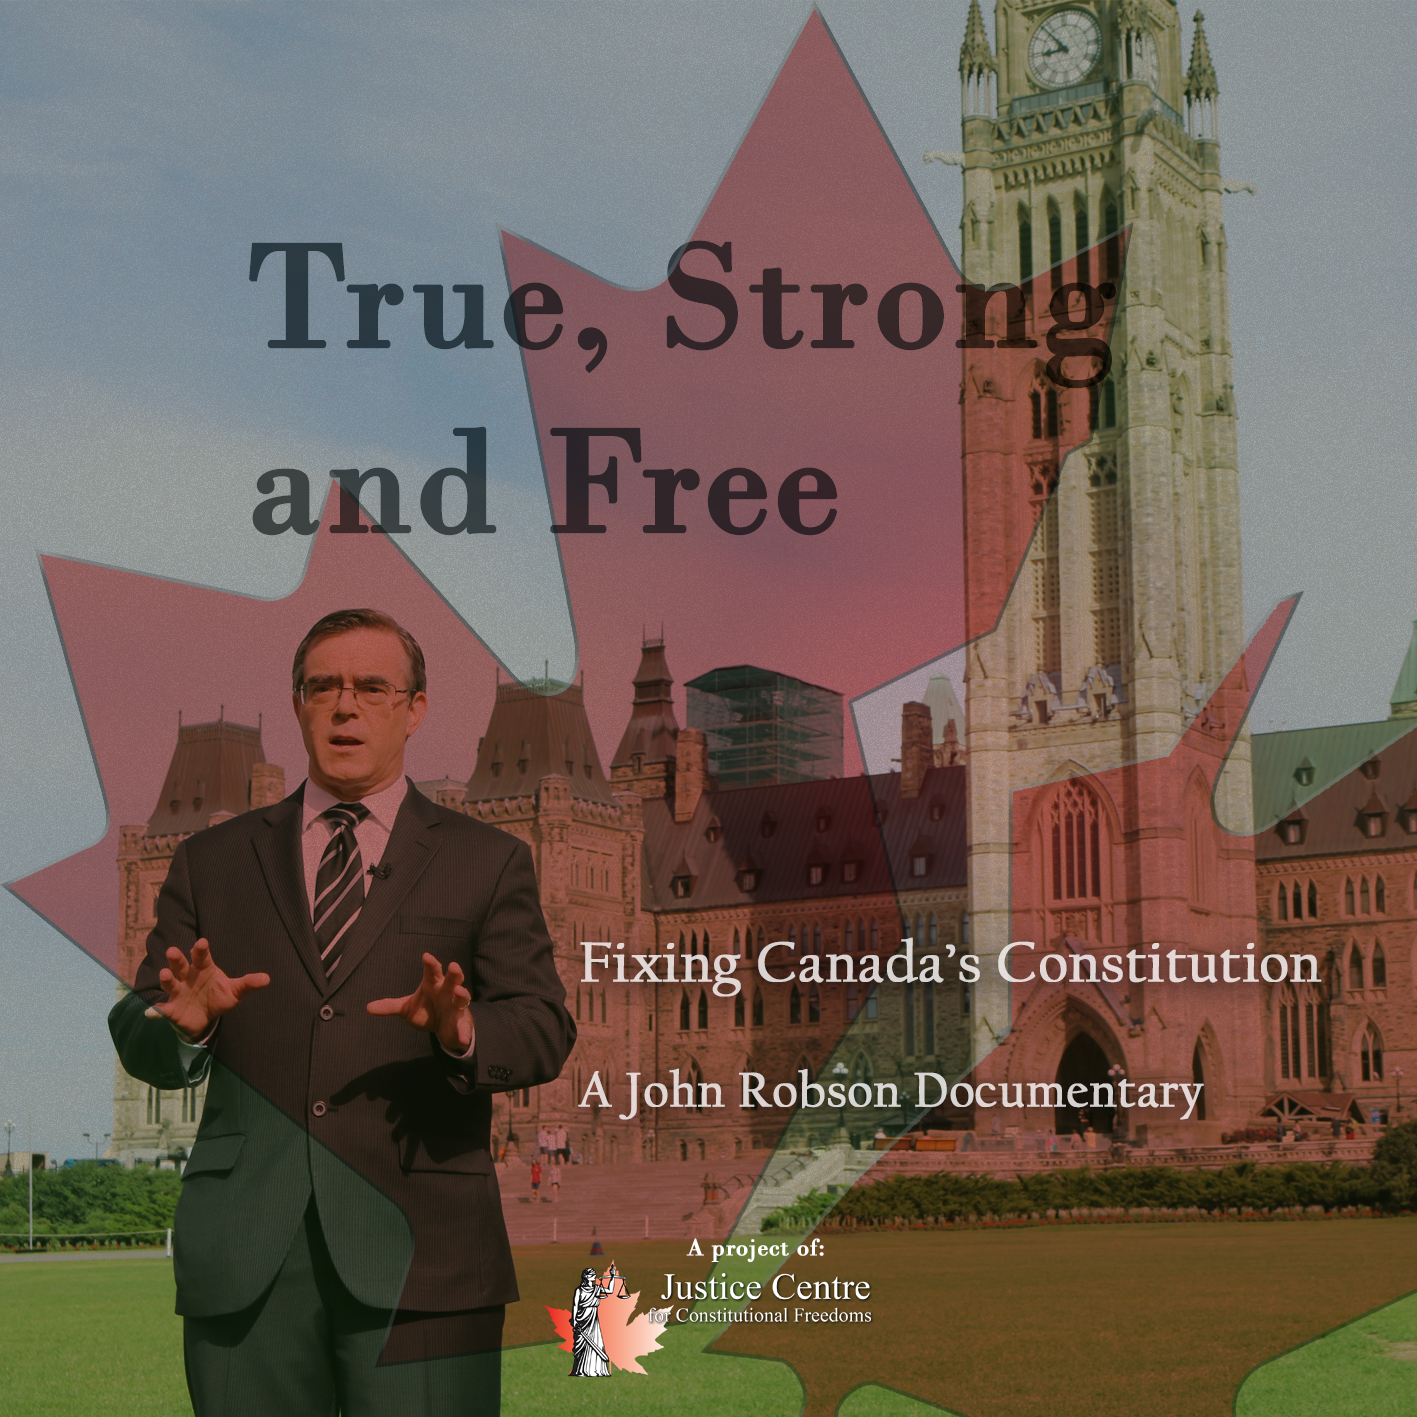 [DVD] True, Strong and Free: A John Robson documentary